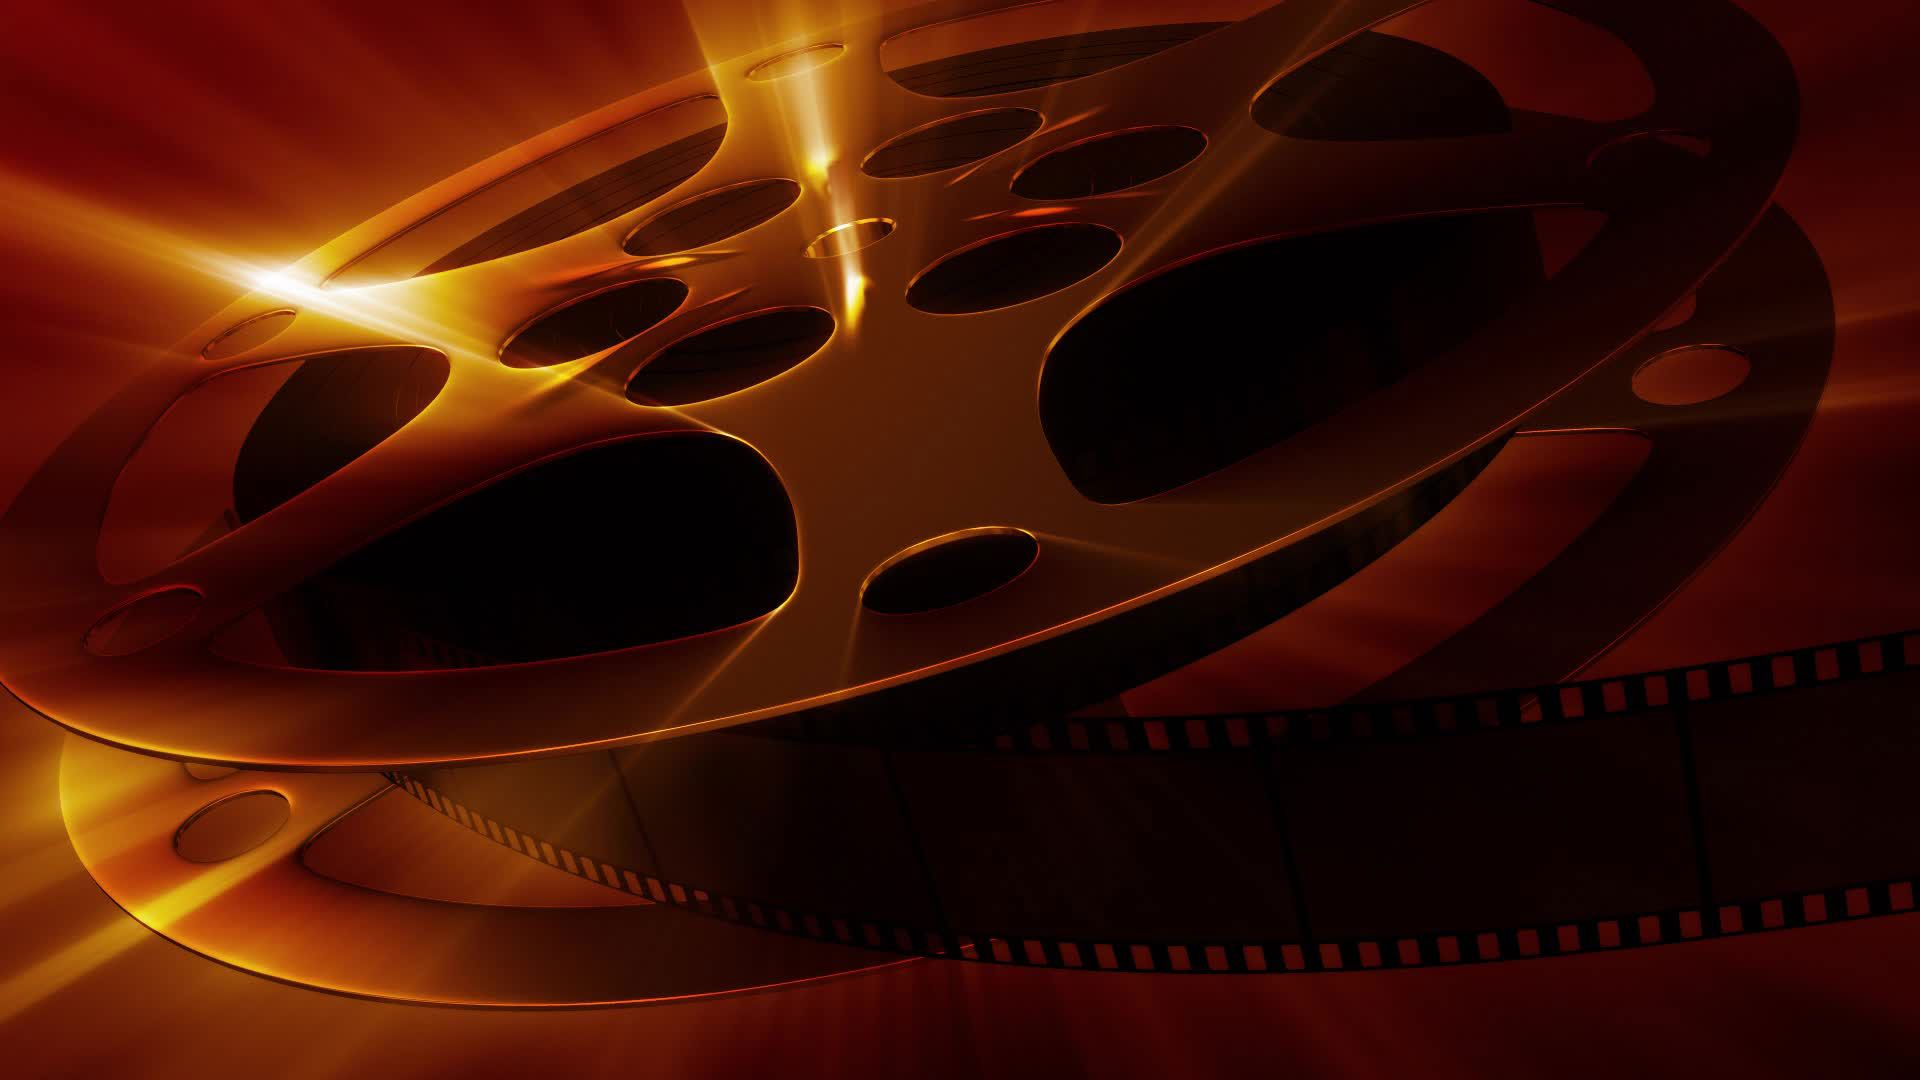 Cinema Download Wallpaper